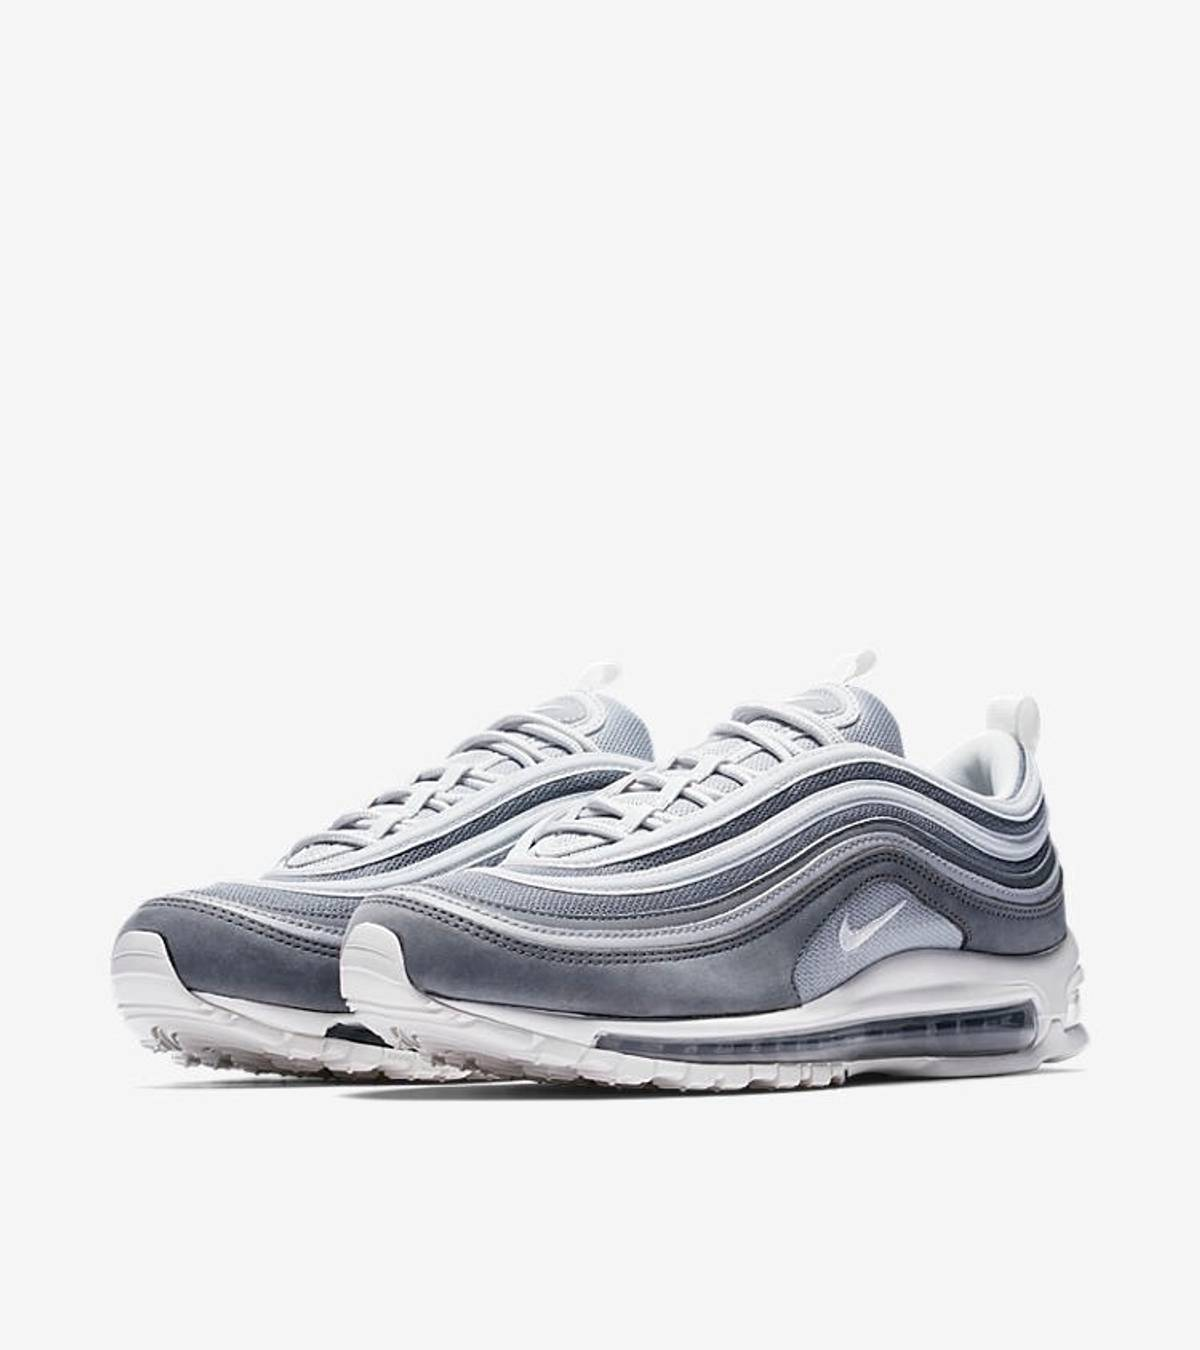 Nike Nike Air Max 97 Premium 'future Forward' Size 11 $315